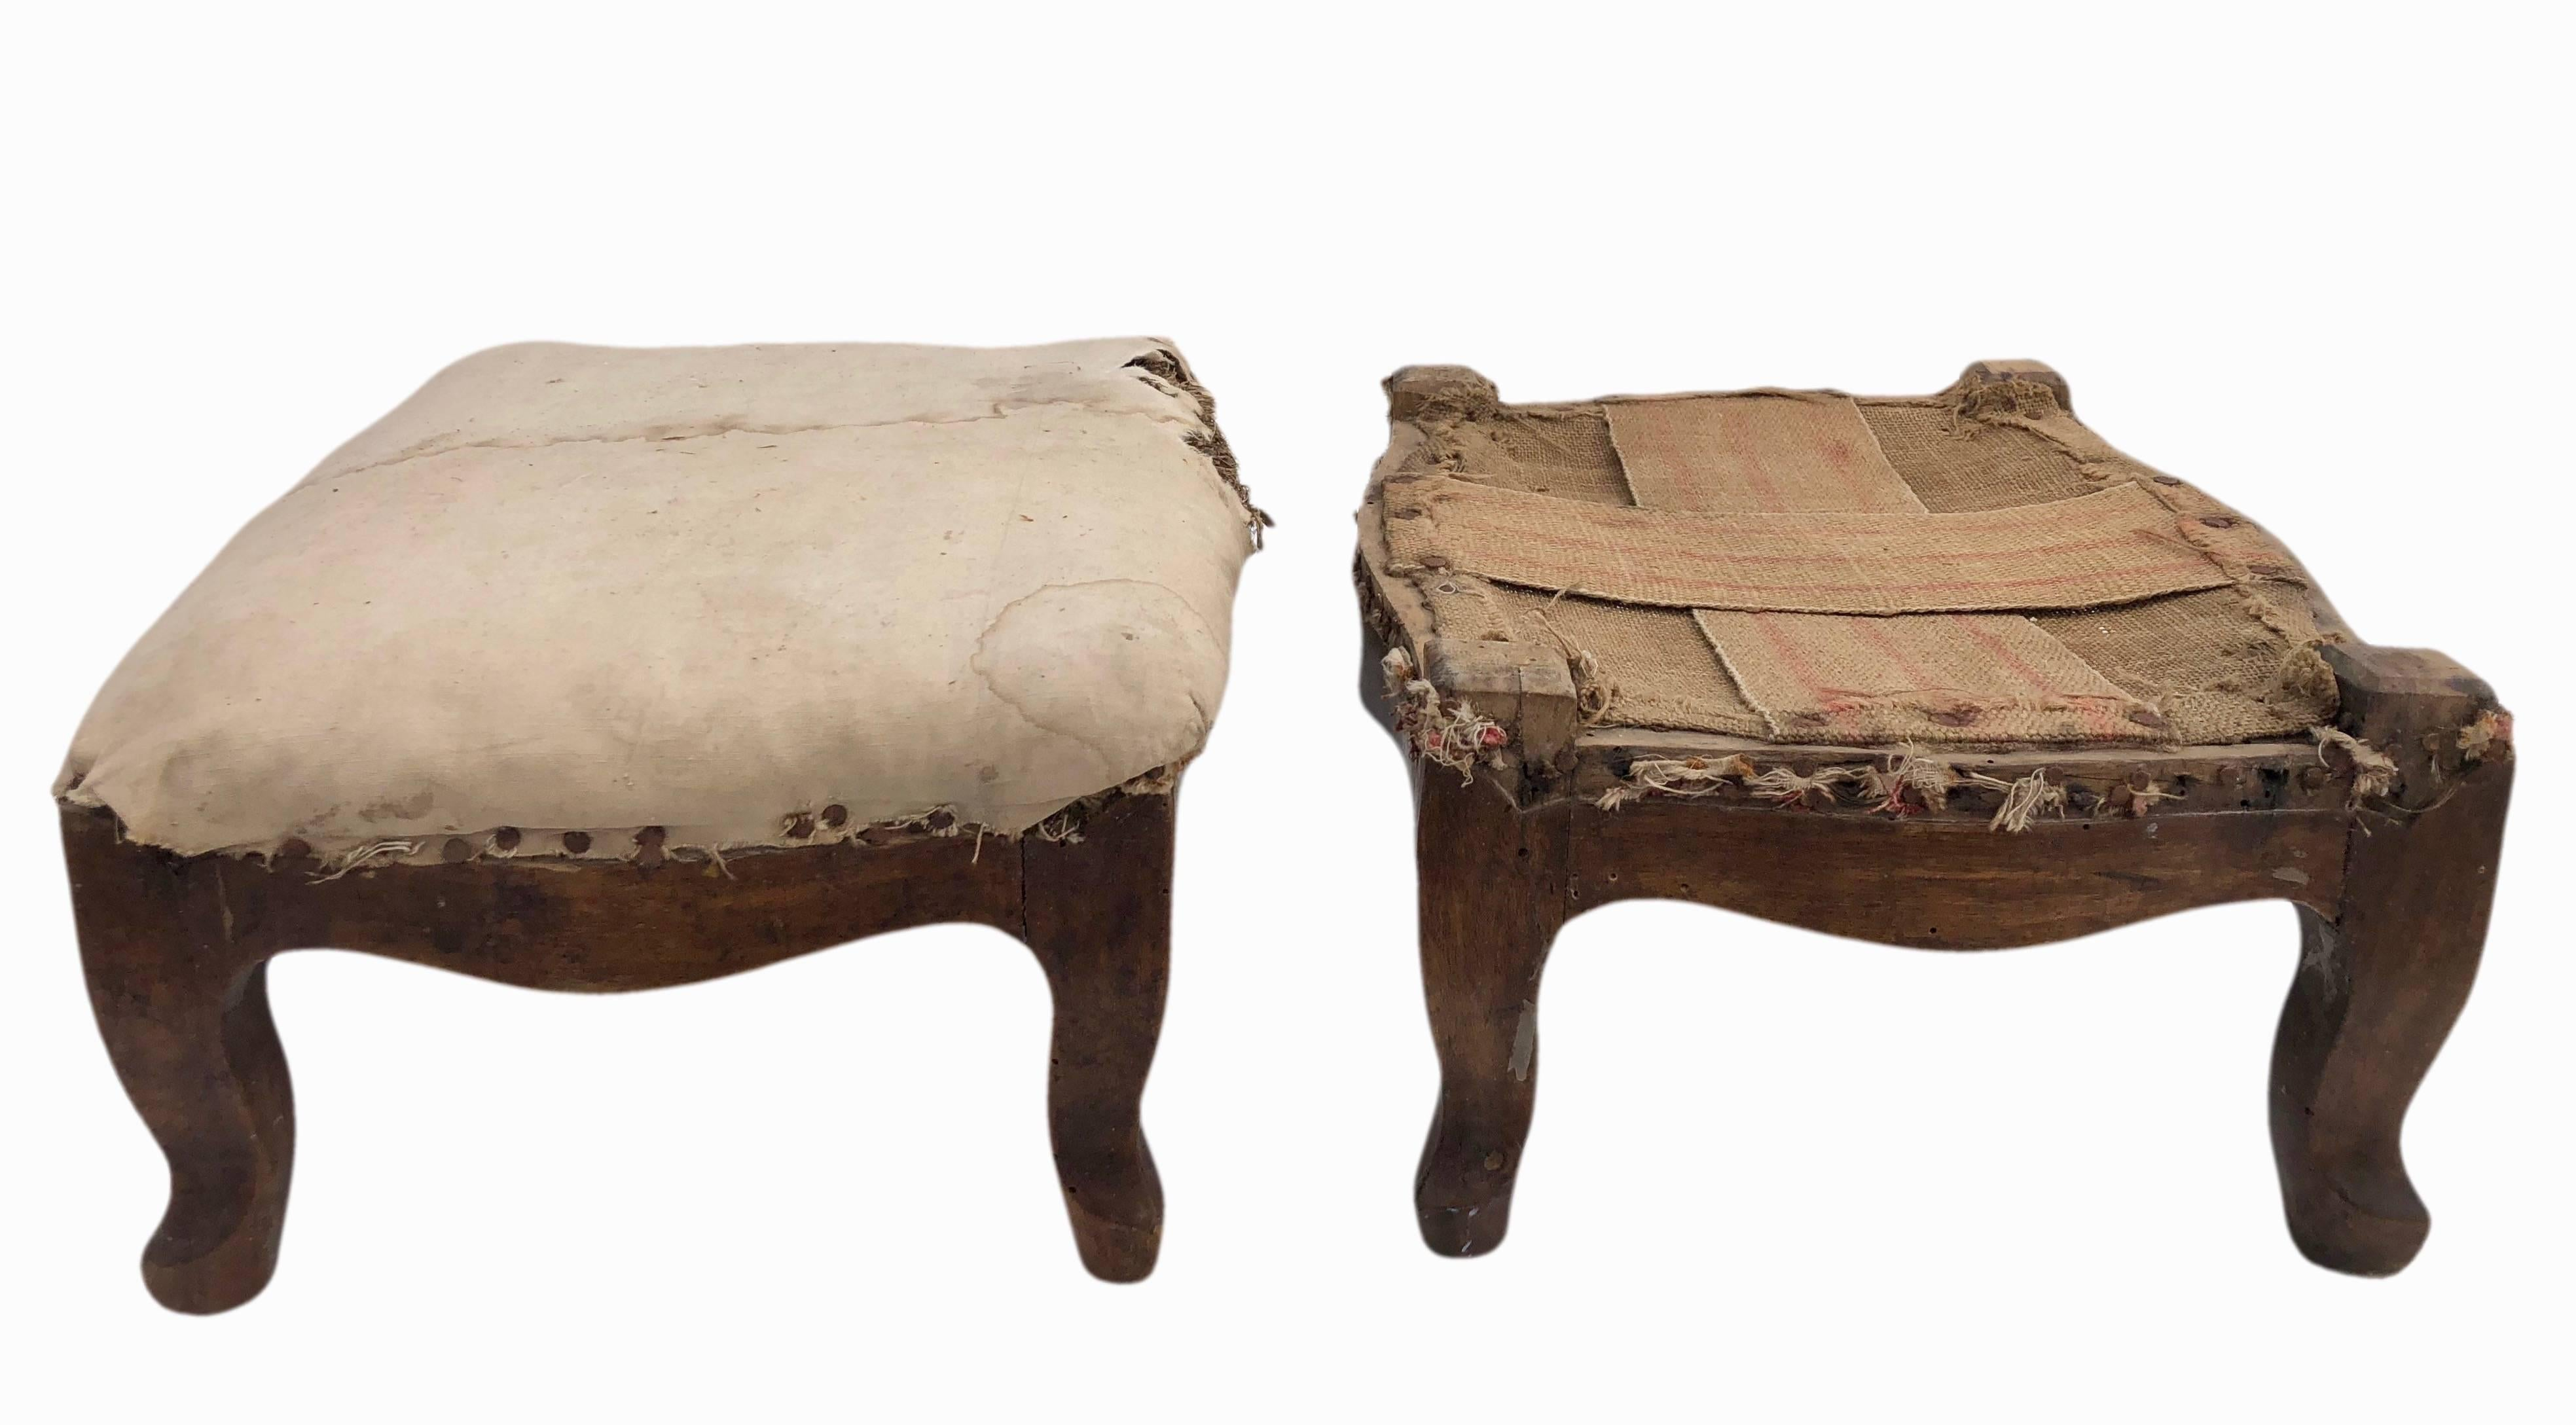 Swell Pair Of Wooden French Regence Footstools Stuffed With Straw Early 1800S Gamerscity Chair Design For Home Gamerscityorg